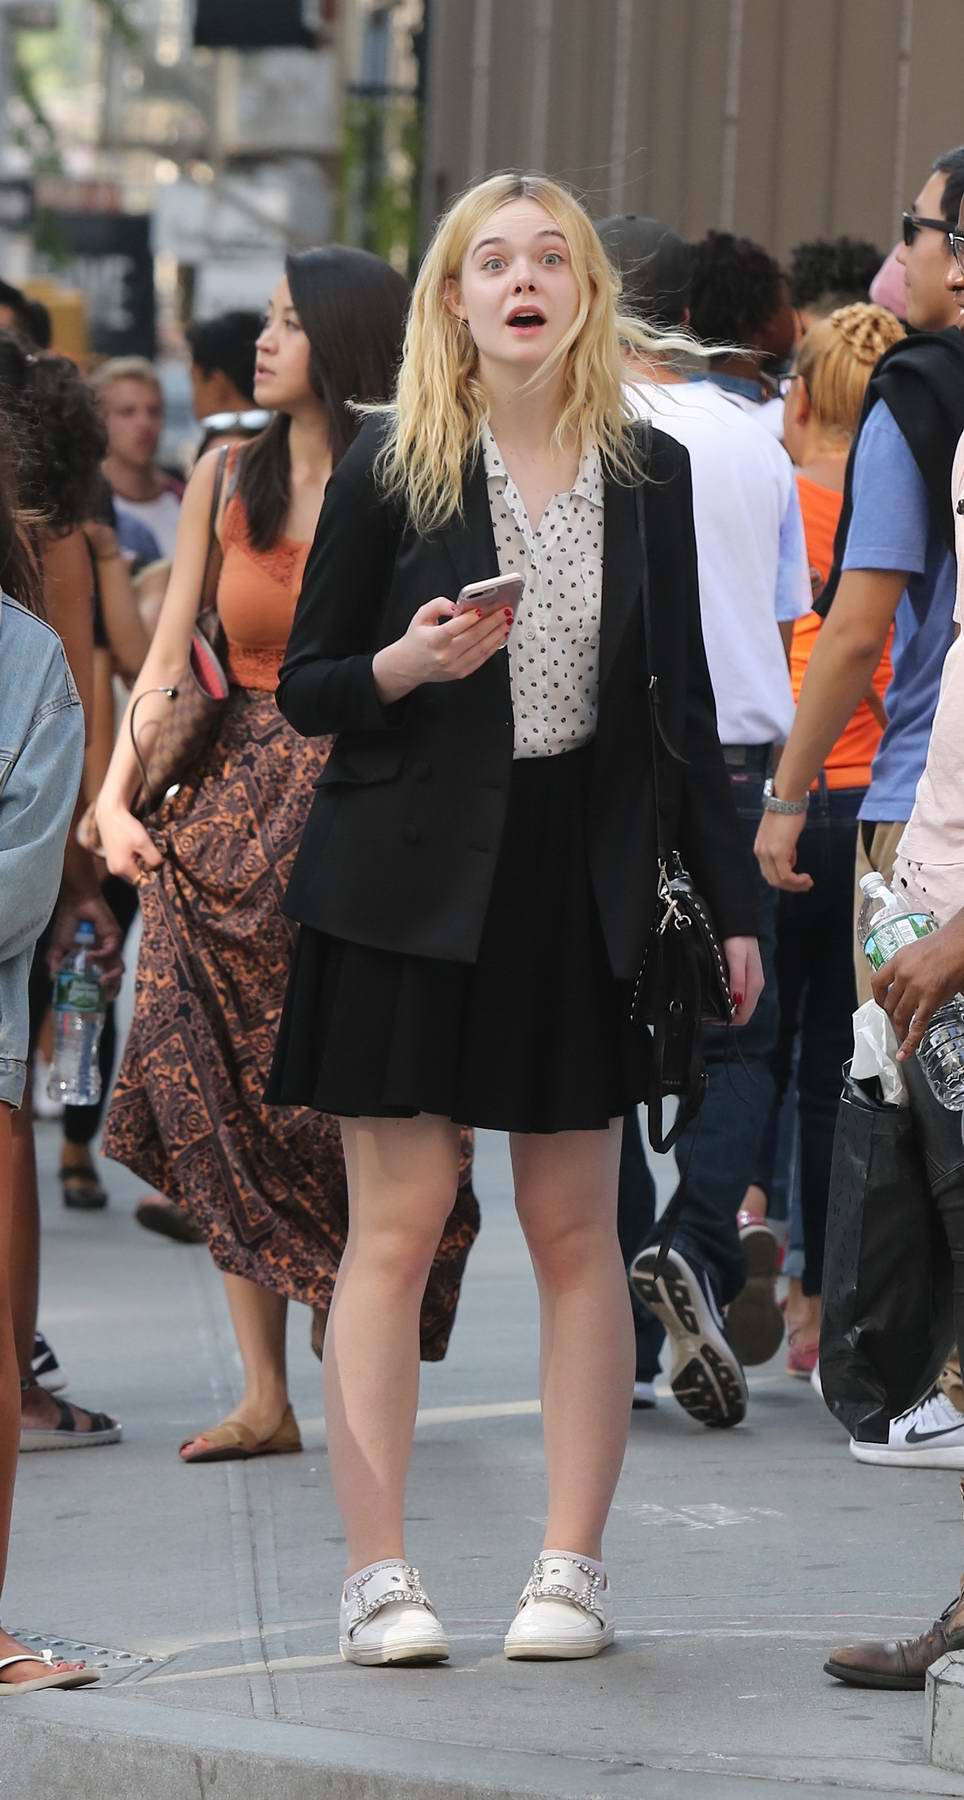 Elle Fanning out for shopping by herself in New York City